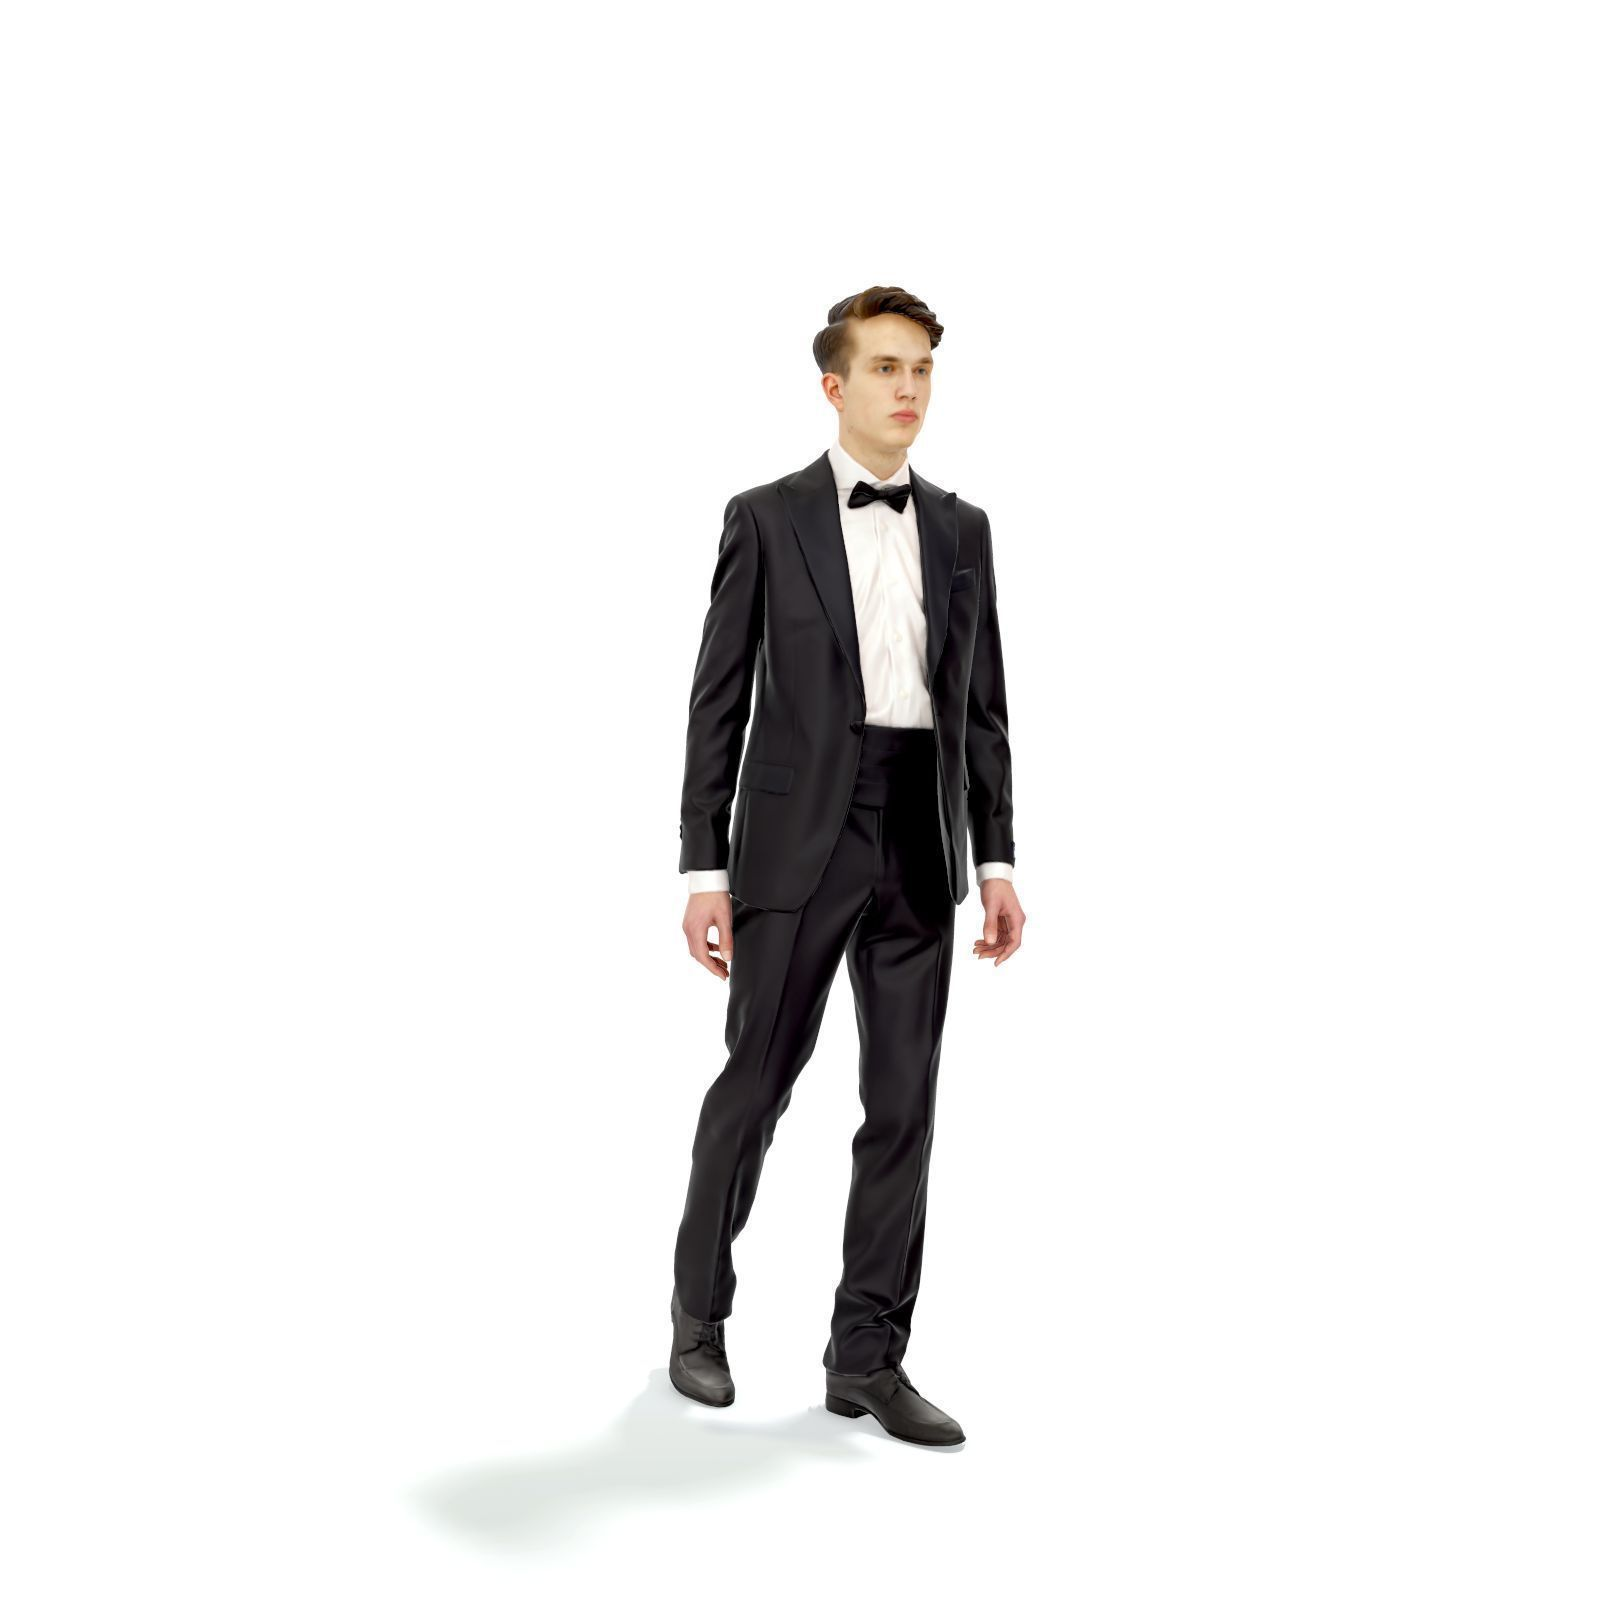 Elegant Man with Tuxedo Walking EMan0312-HD2-O06P01-S